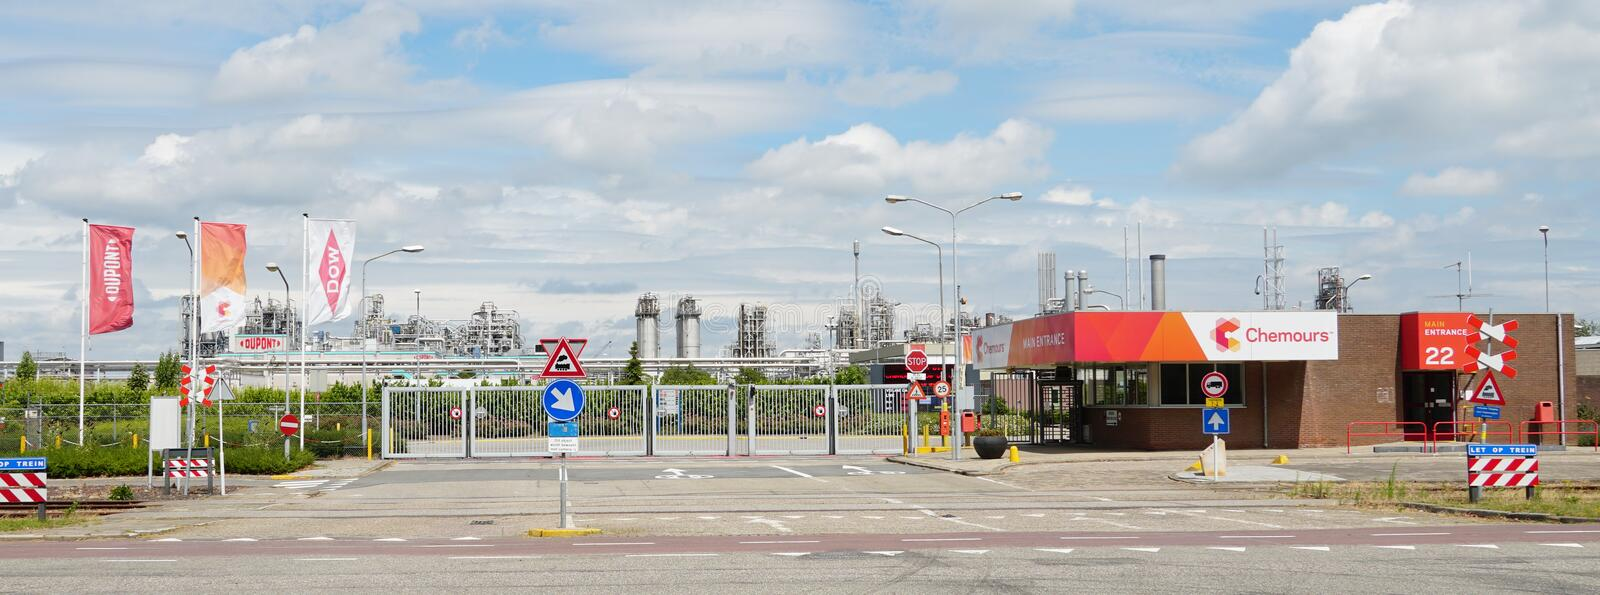 Chemours DuPont chemical company in Dordrecht, the Netherlands. Dordrecht, the Netherlands. July 2019. Entrance to Chemours DuPont chemical factory stock photography